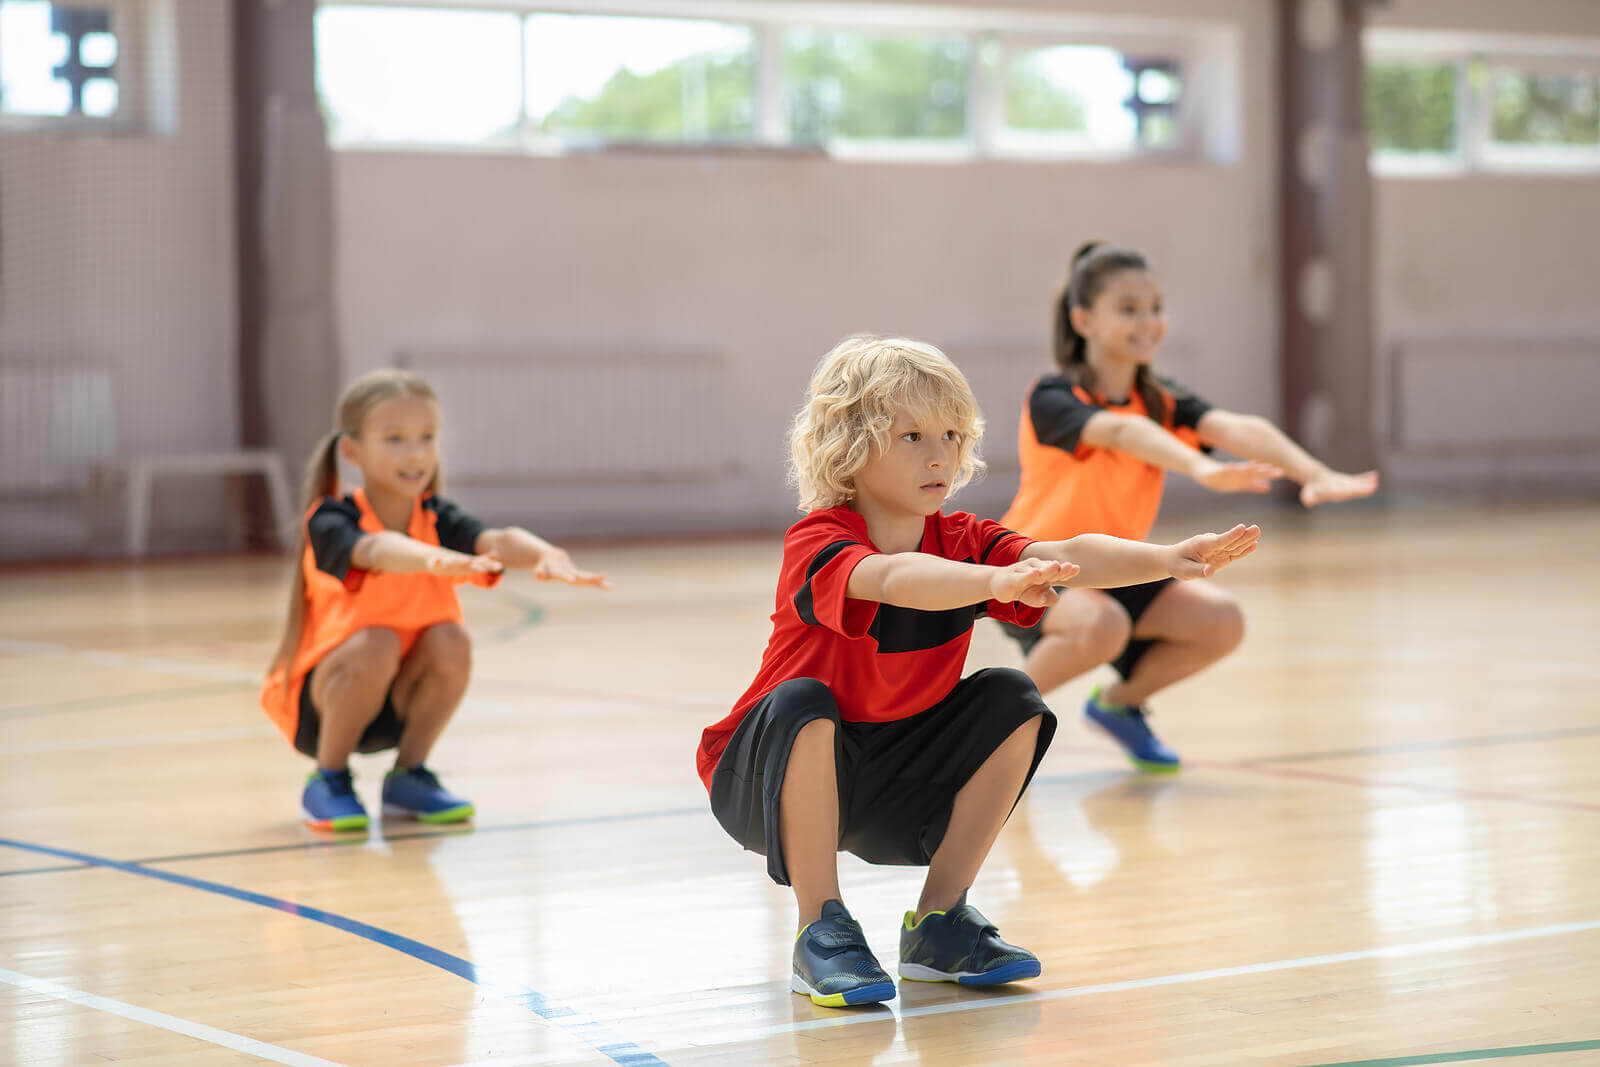 Benefits of Endurance Training for Children